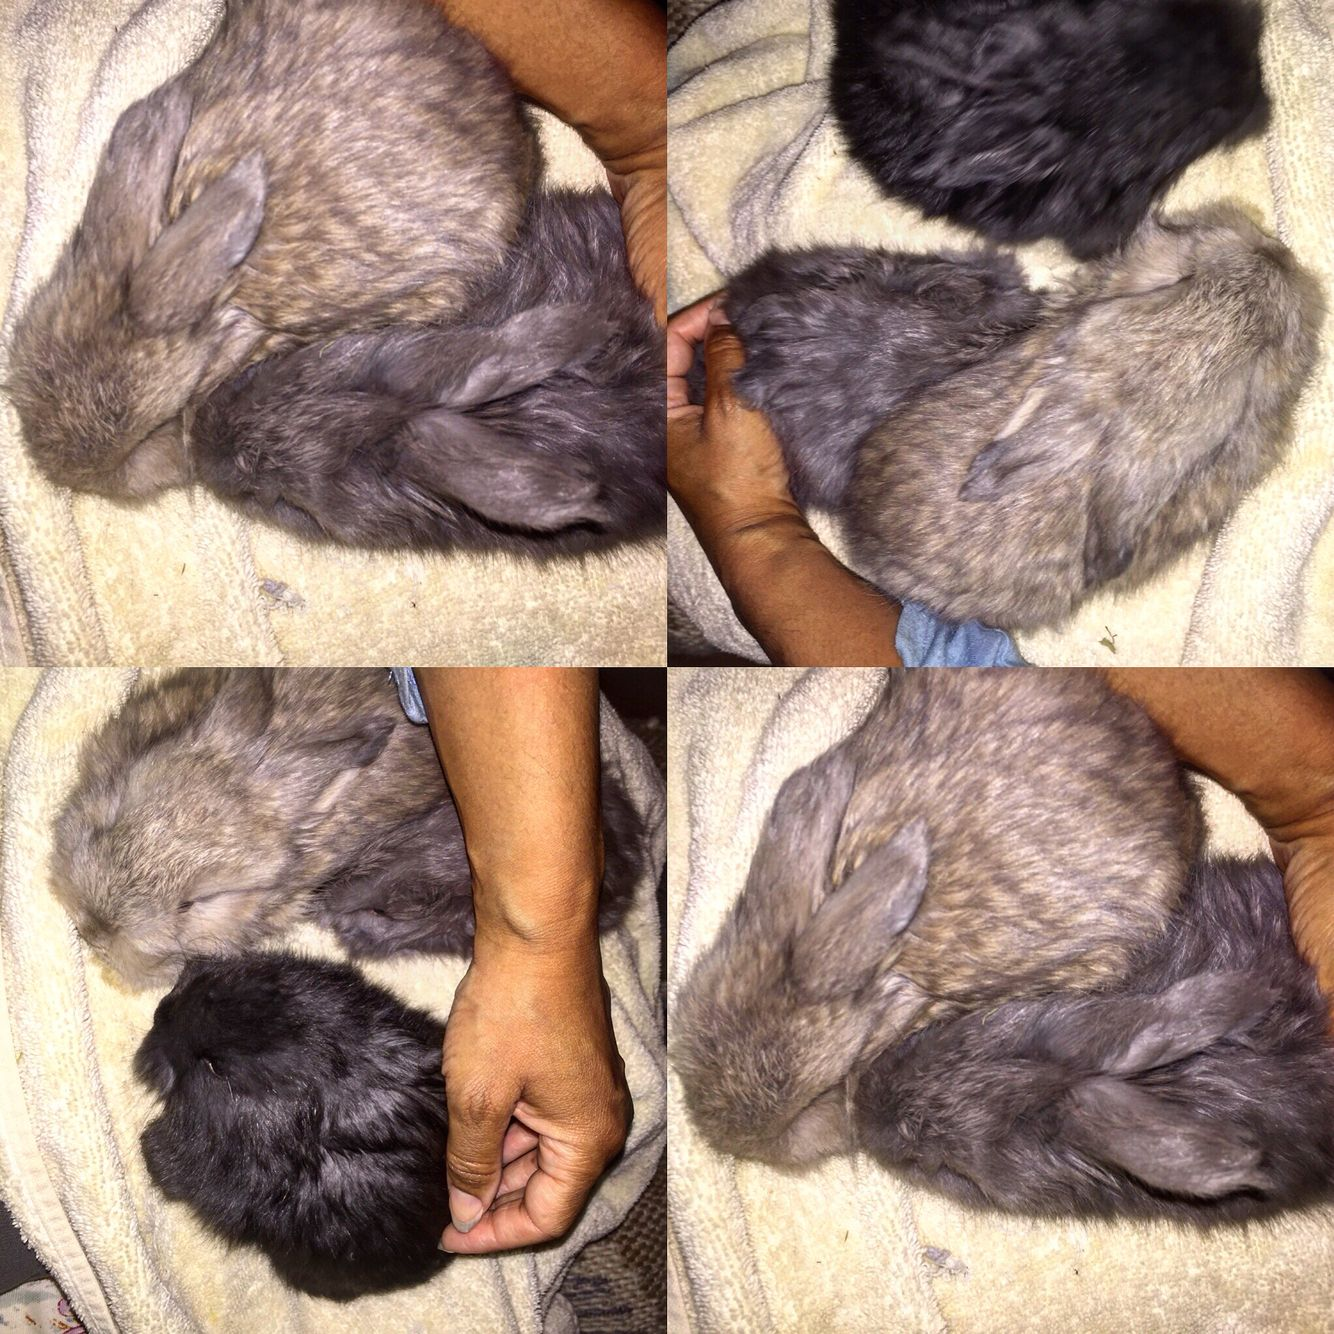 More pictures of my friend's six week old baby angora bunny rabbits.